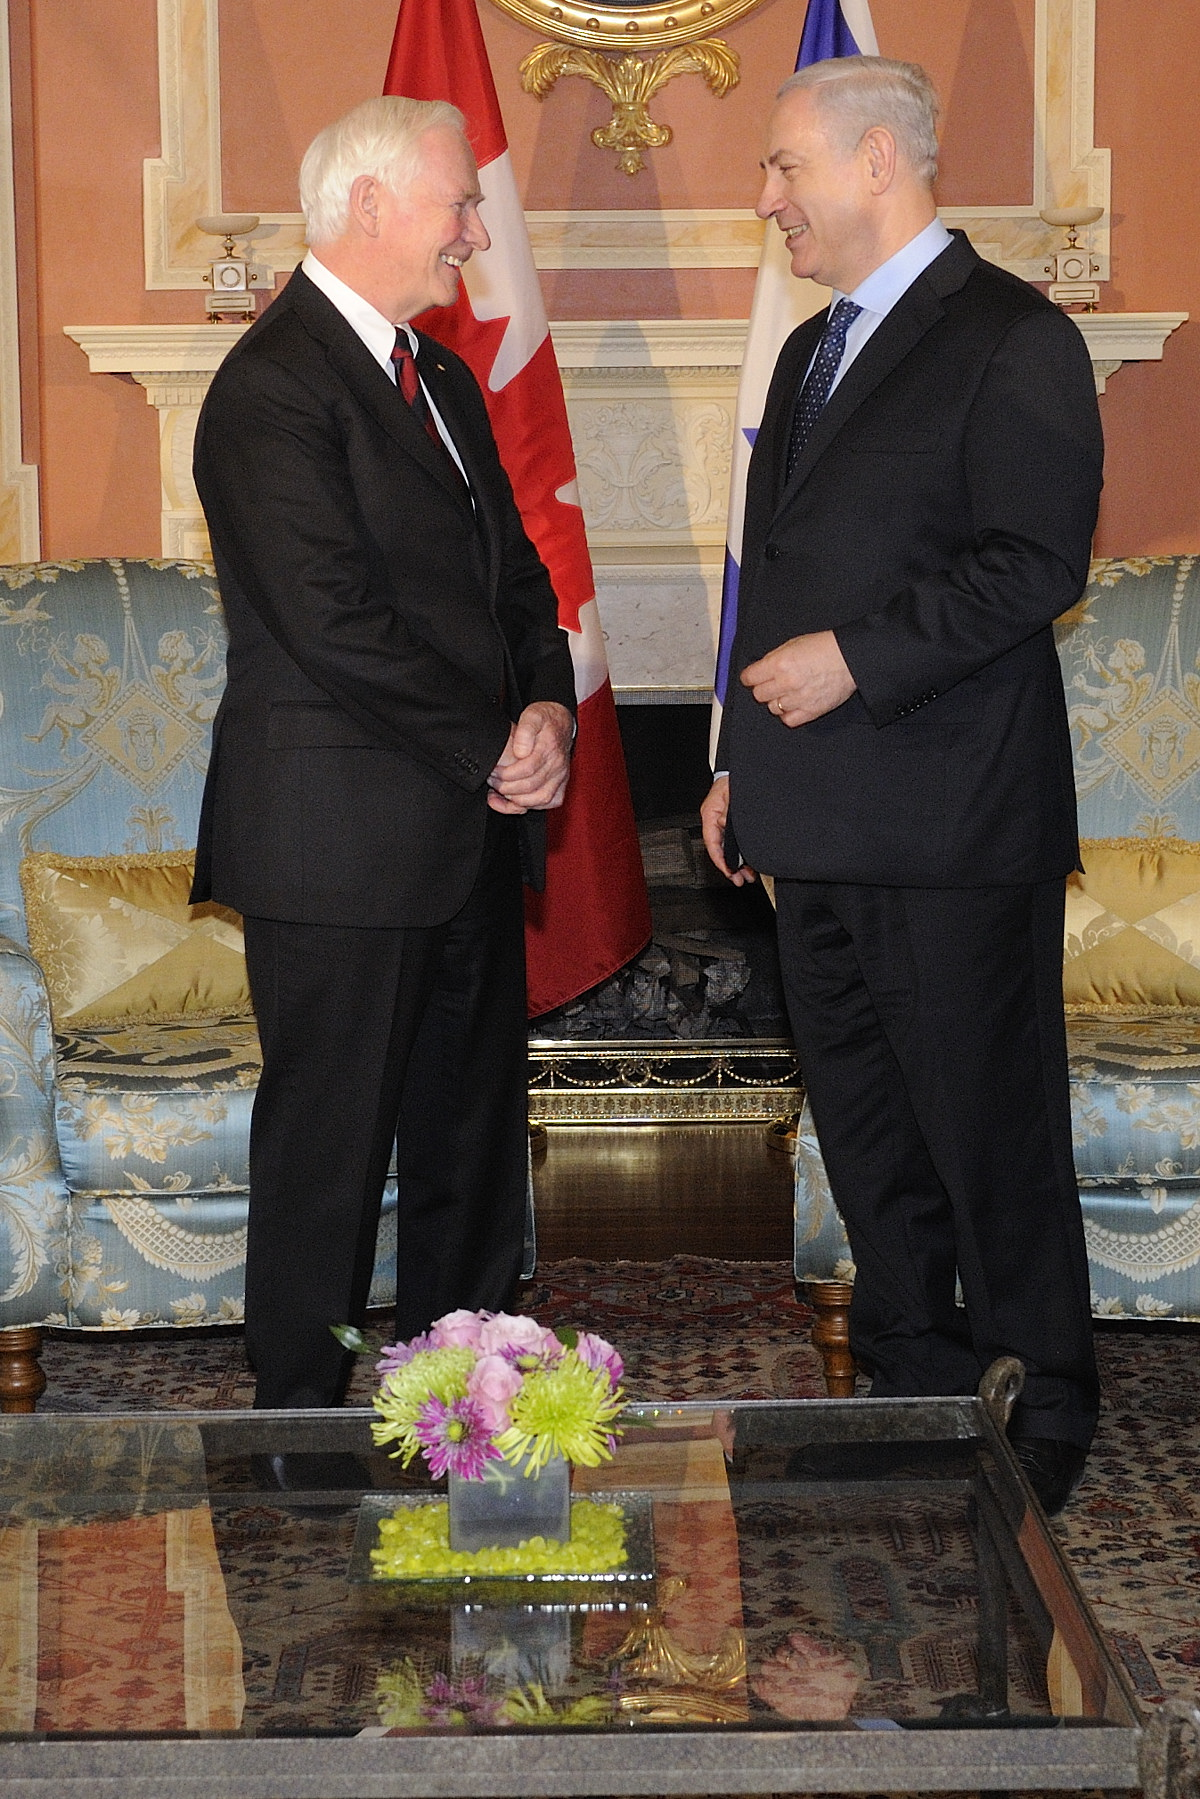 Following a morning at Parliament, His Excellency Benjamin Netanyahu, Prime Minister of the State of Israel, was at Rideau Hall for a courtesy call.